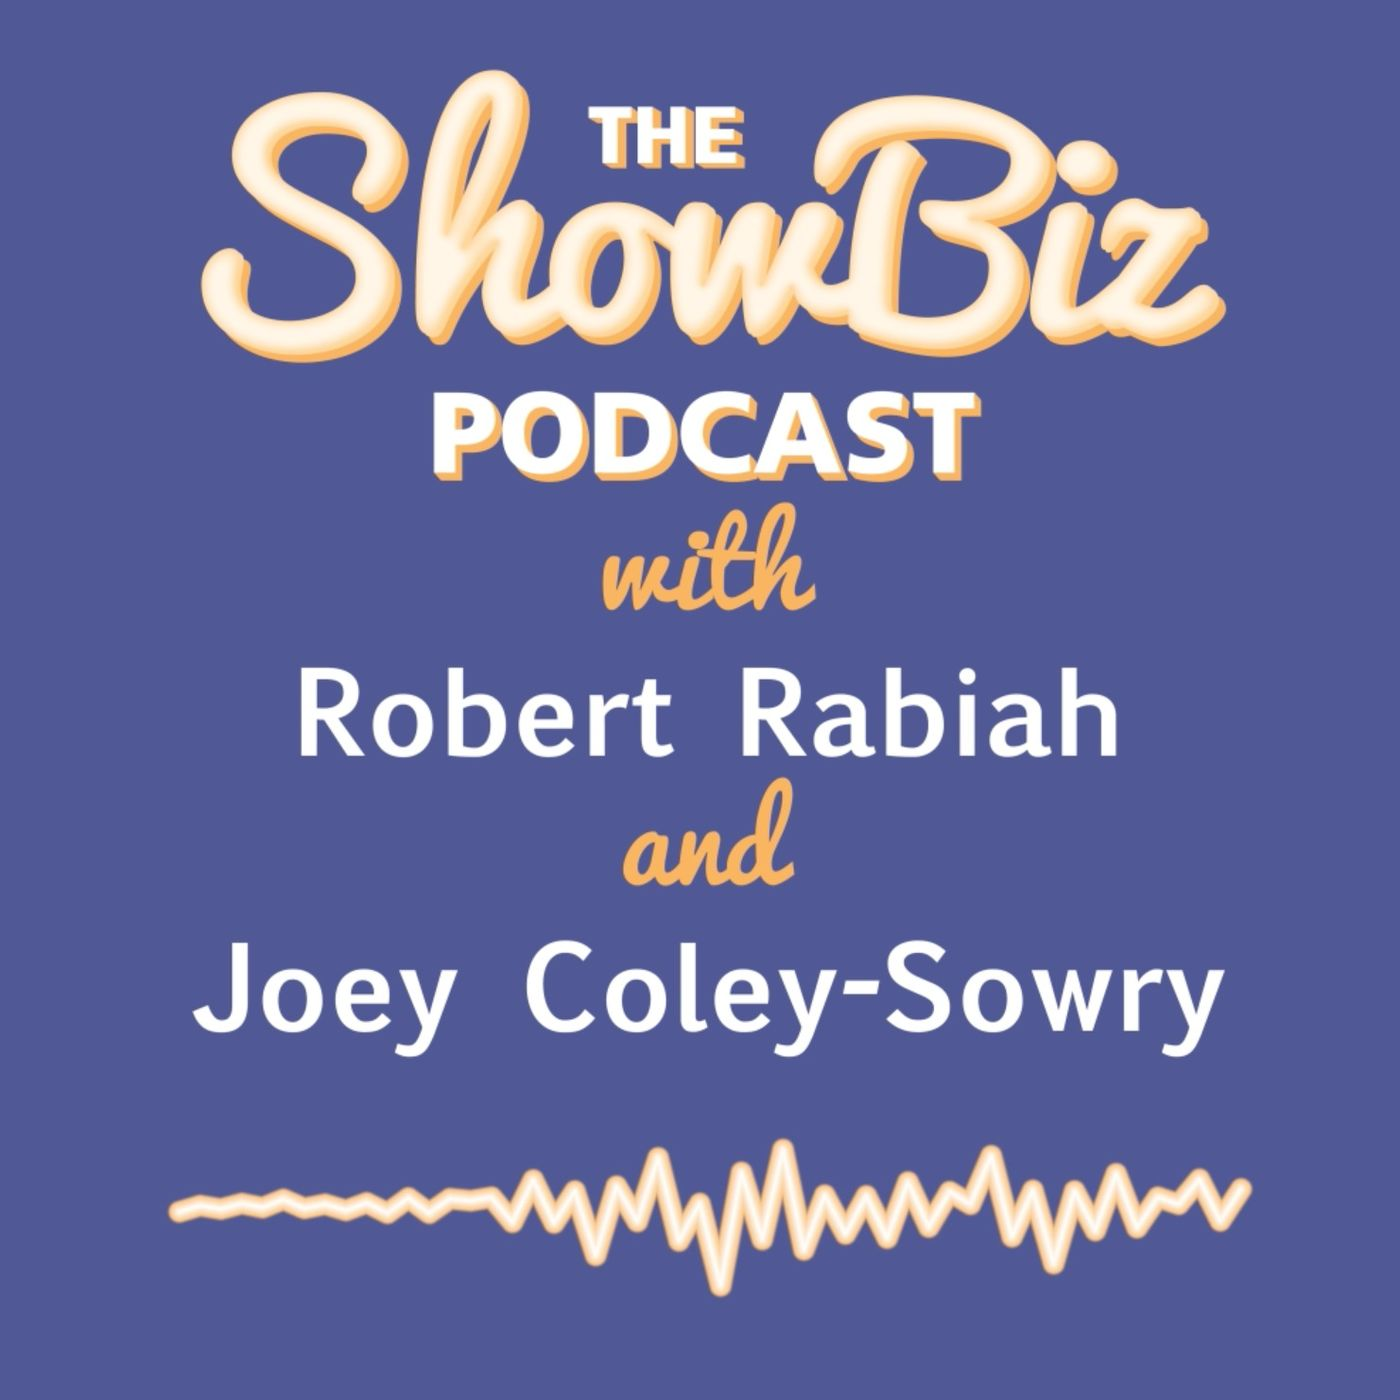 The ShowBiz Podcast with Robert Rabiah and Joey Coley-Sowry - Trailer 2